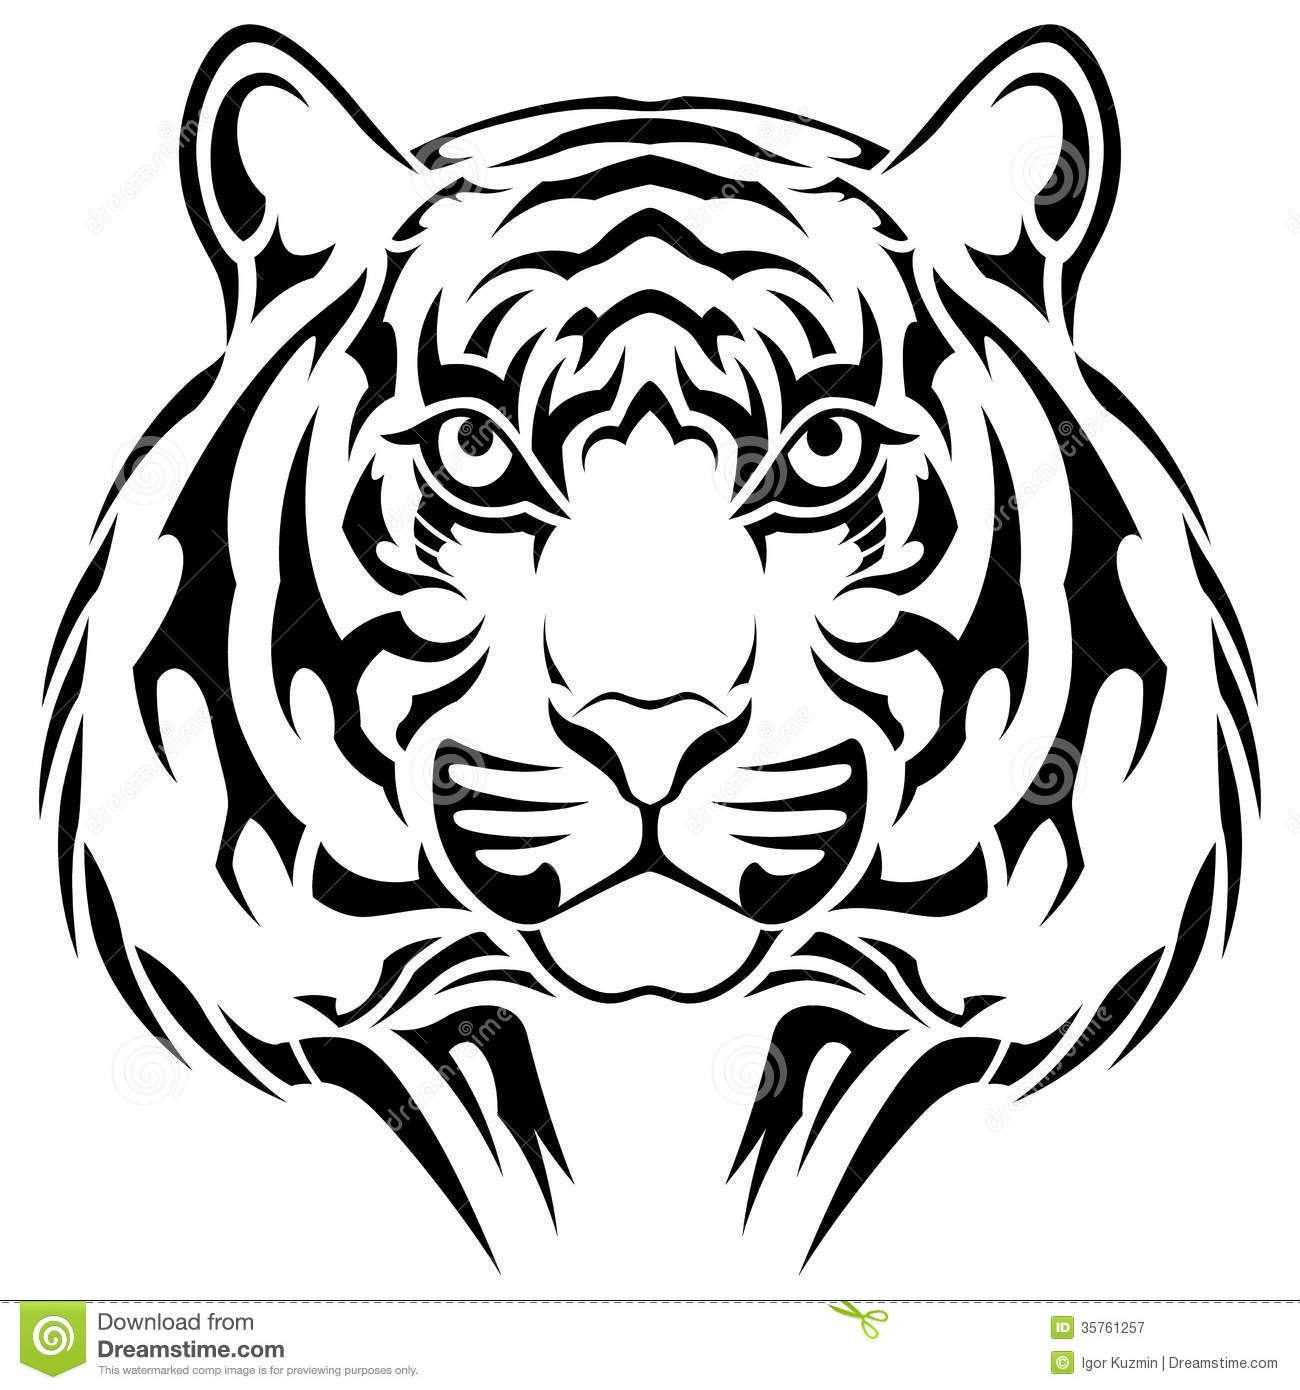 Tigre tatouage tribal photographie stock libre de droits image 35761257 - Tatouage tigre signification ...